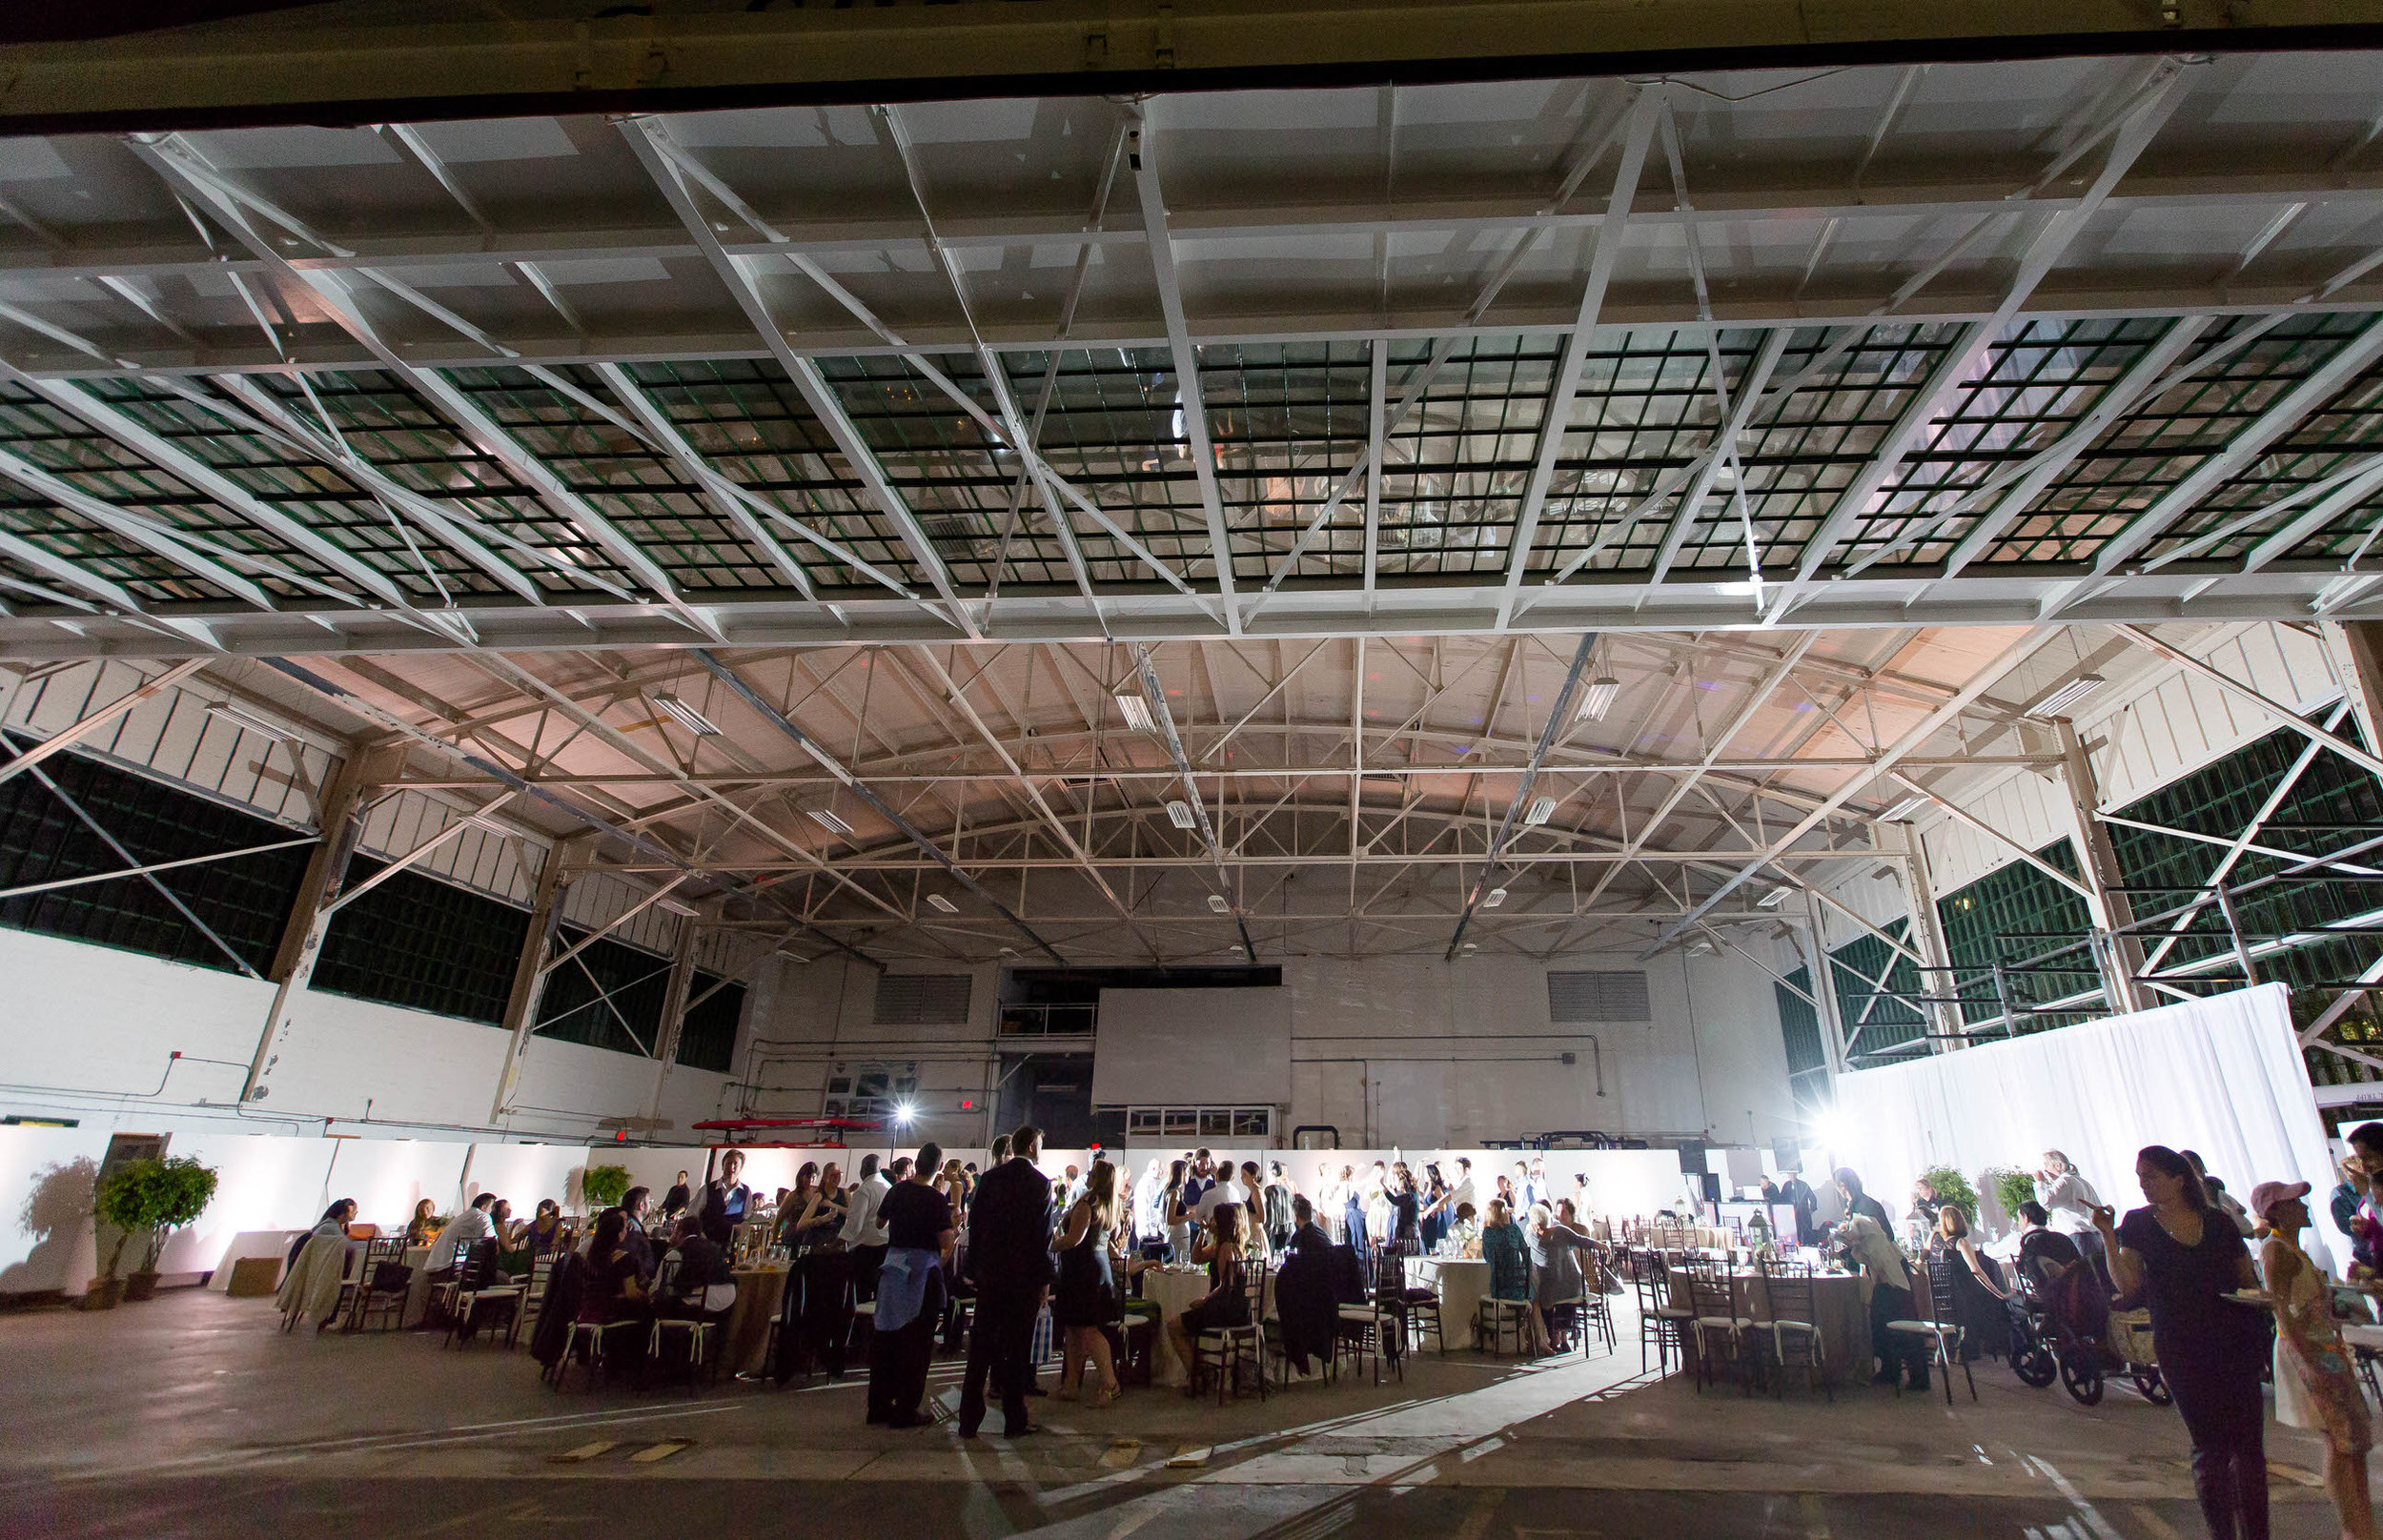 airport_hangar_wedding_miami_tiny_house_photo_stephanie_lynn.jpg